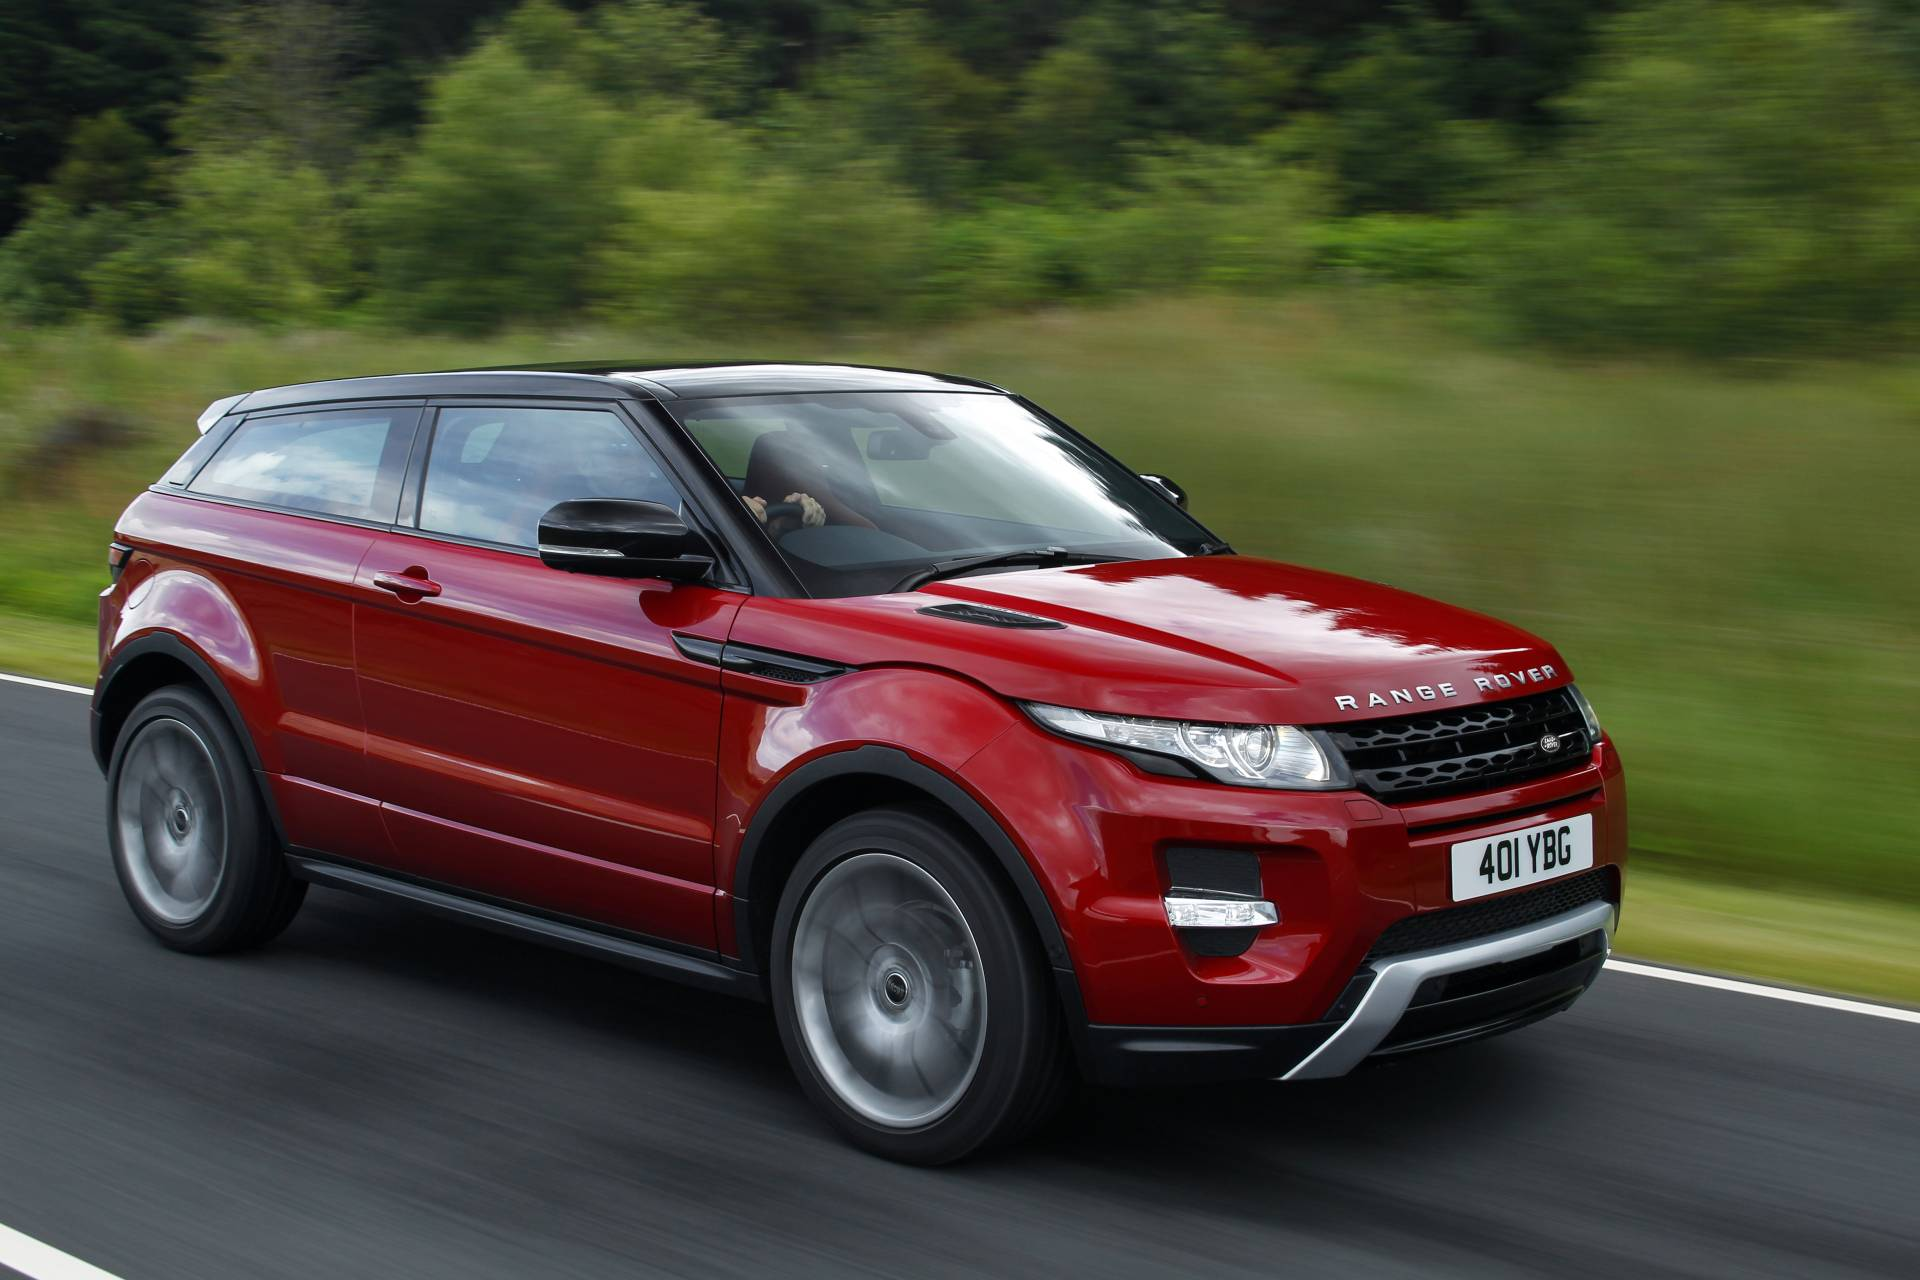 2013 land rover range rover evoque news and information. Black Bedroom Furniture Sets. Home Design Ideas